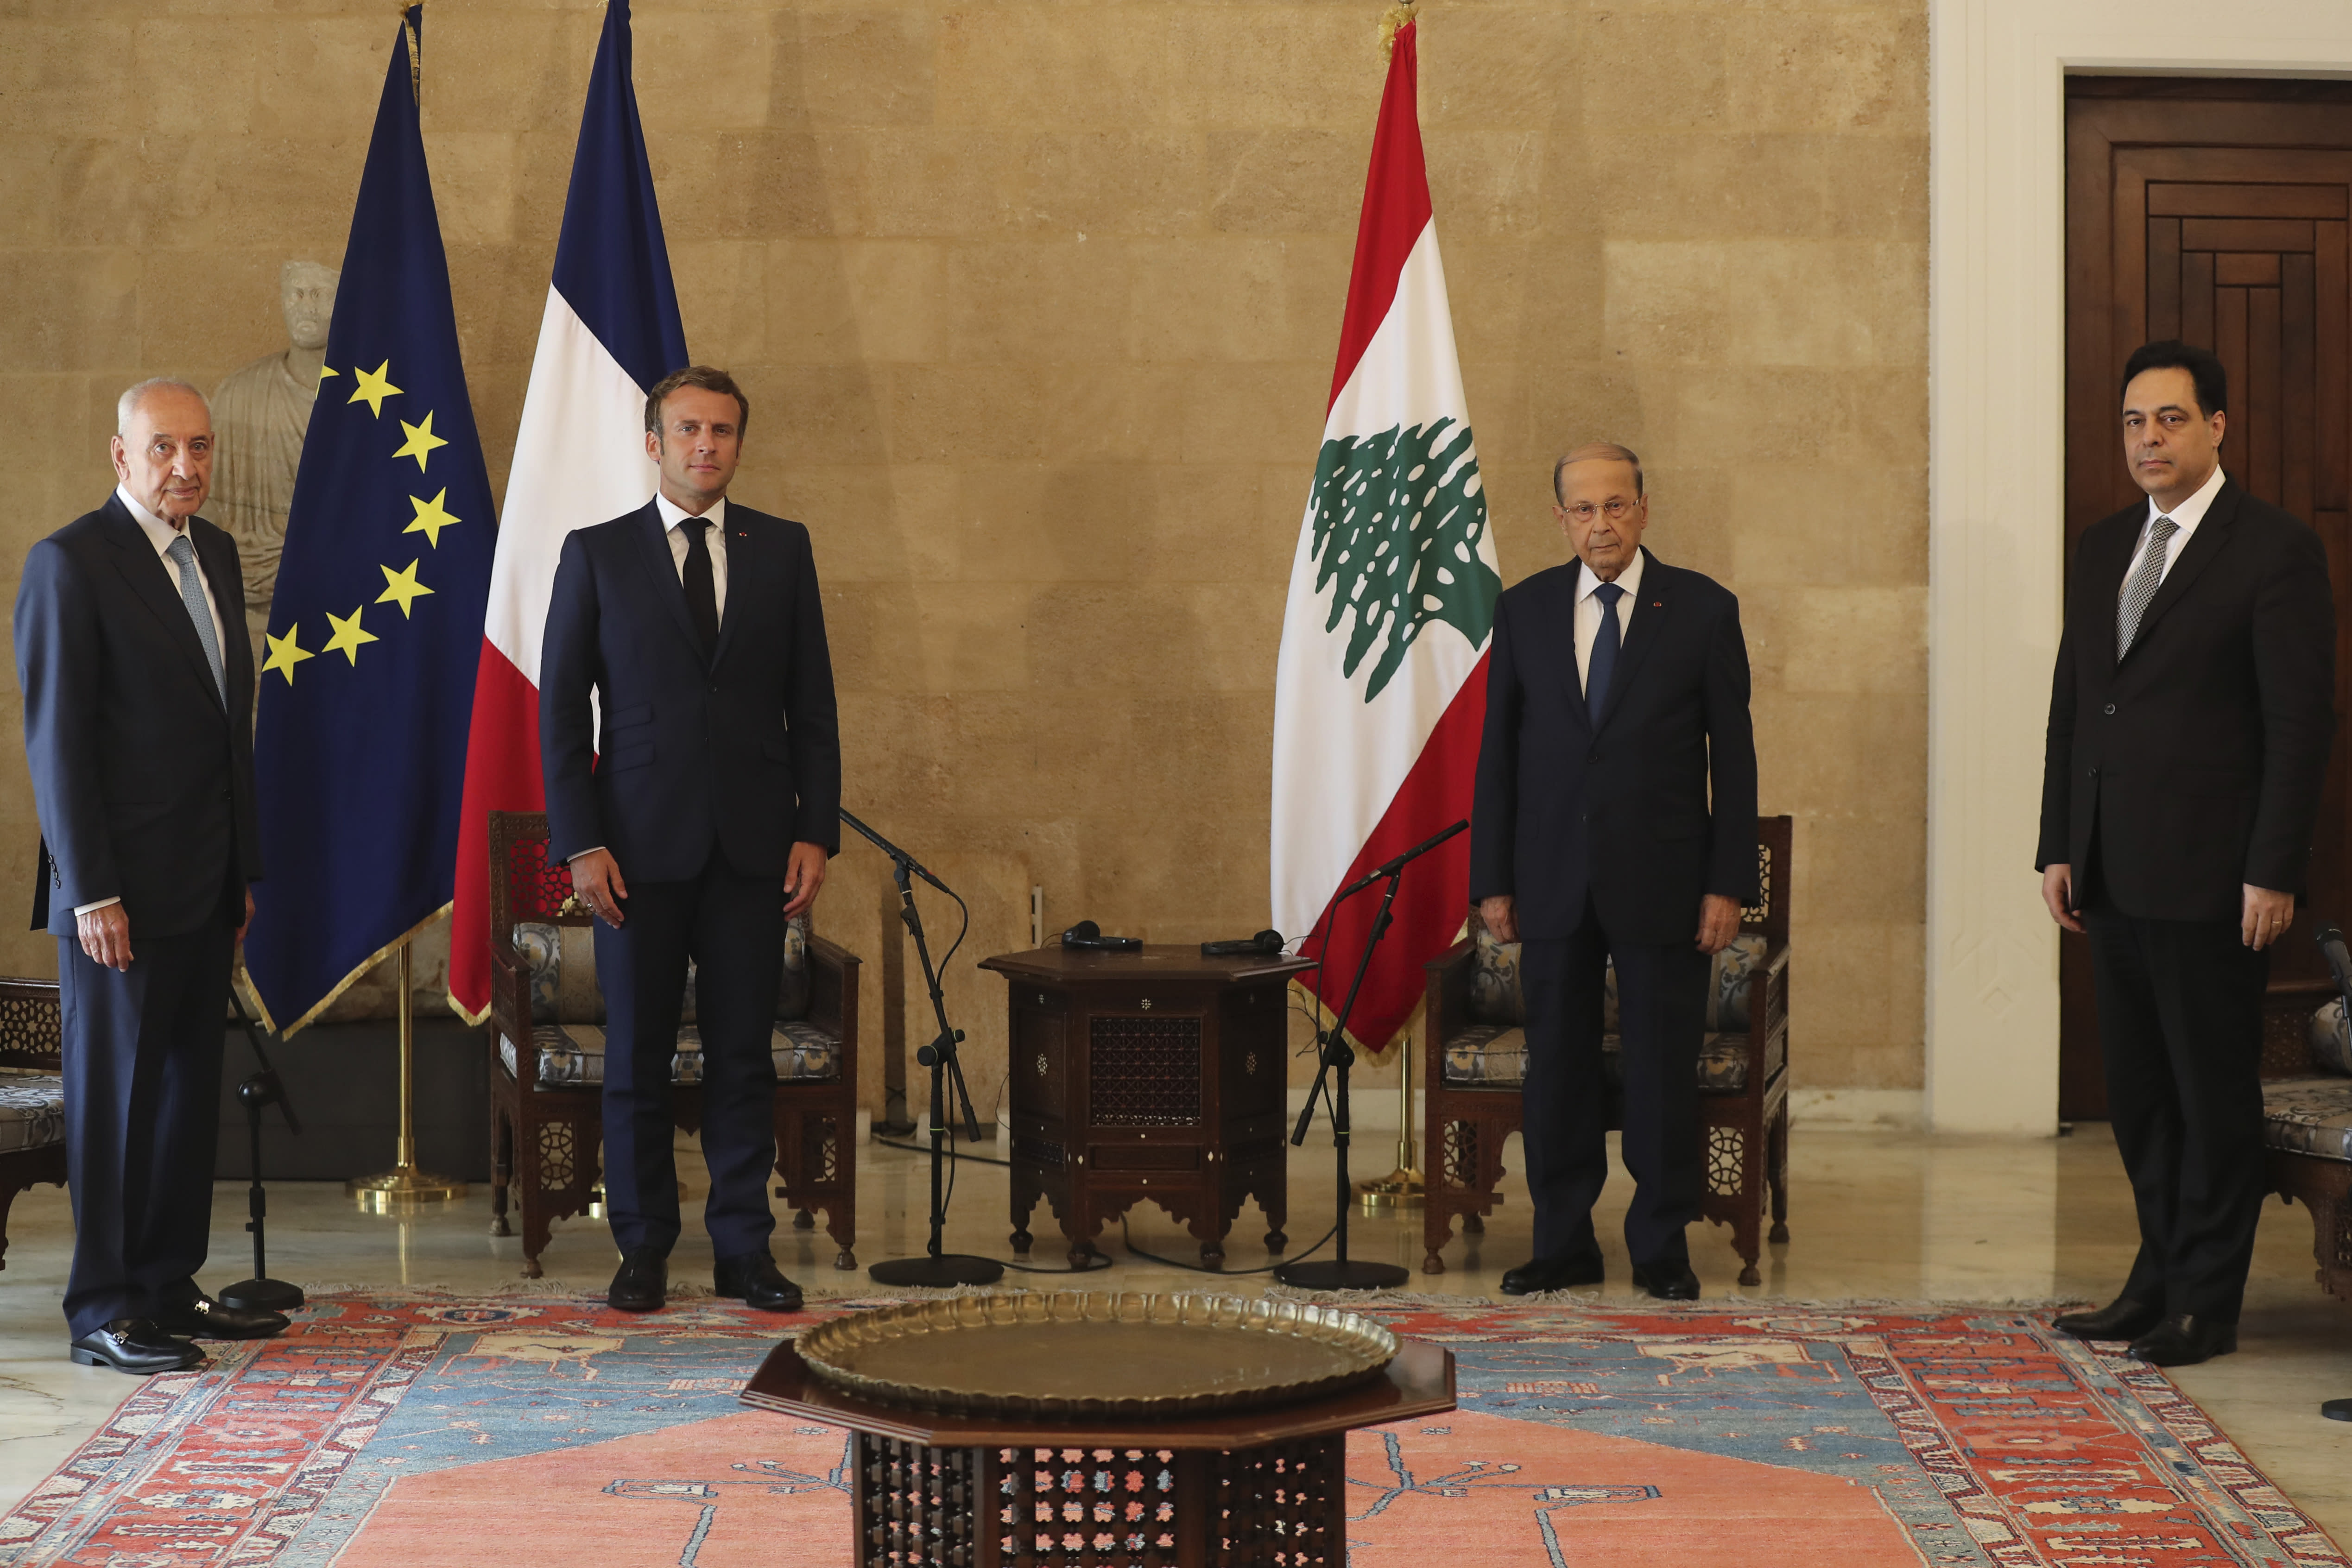 Diplomat tapped to be PM vows reforms in crisis-hit Lebanon